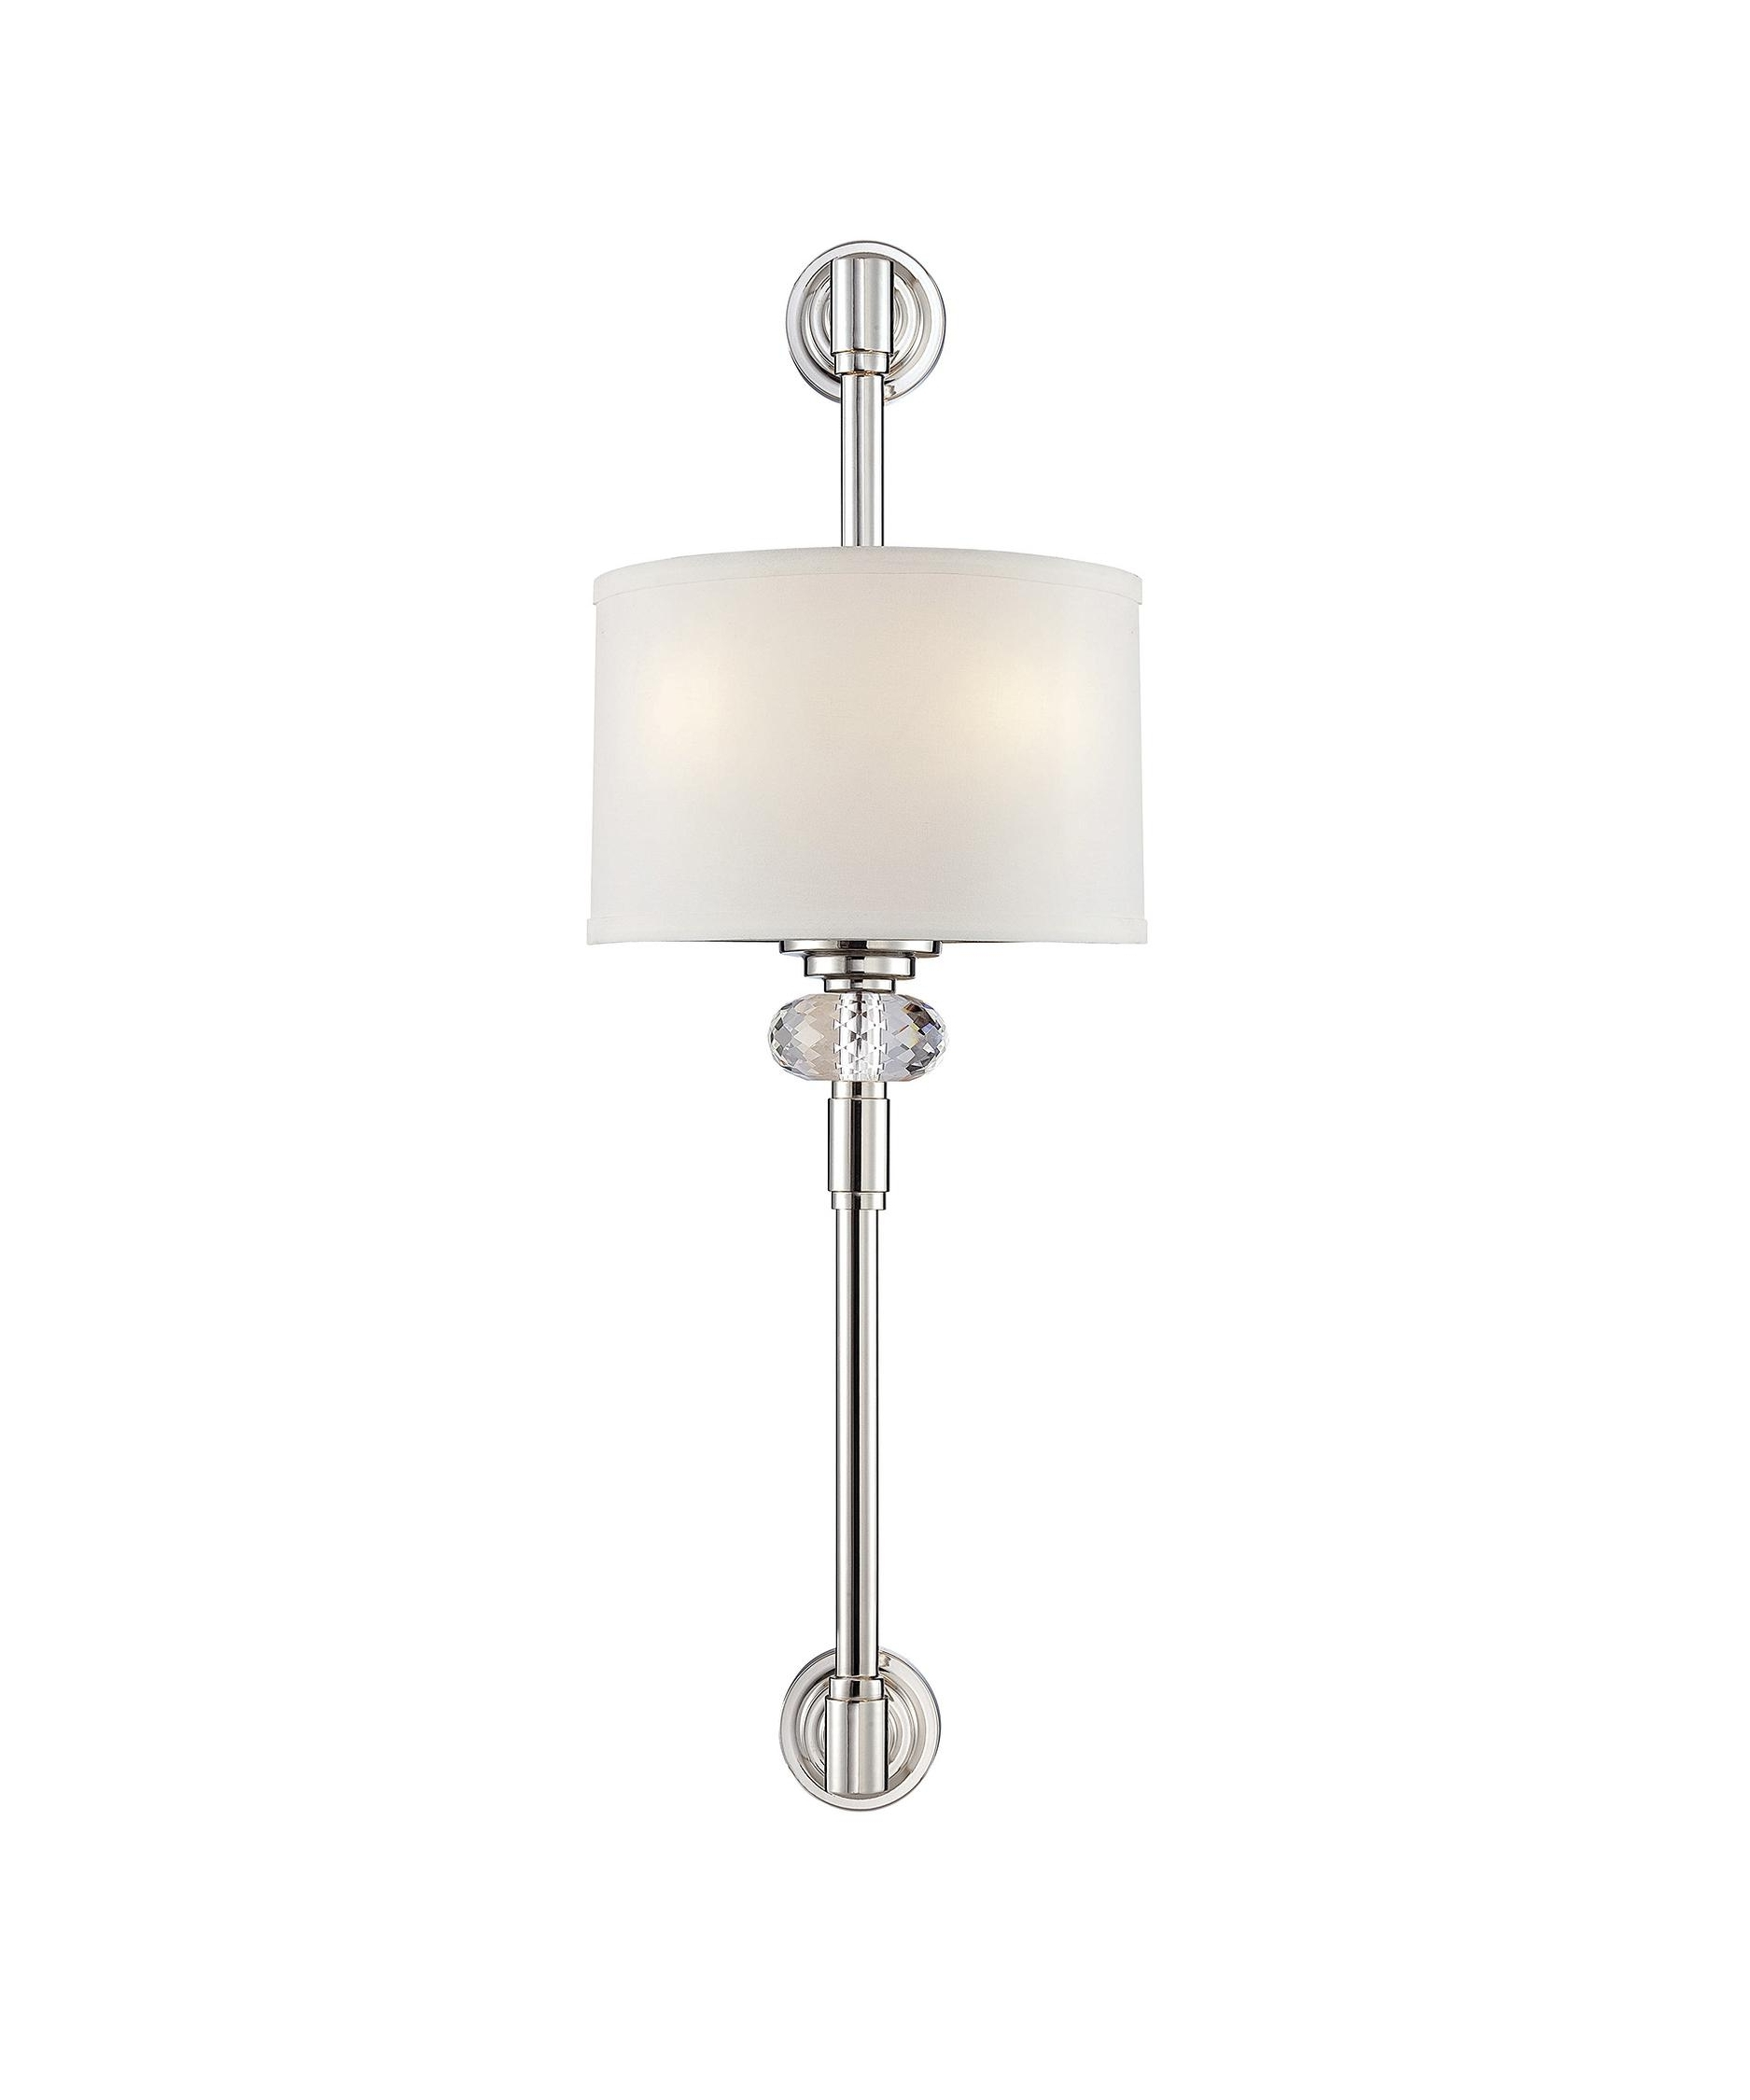 2018 Savoy House 9 5951 2 Marlow 11 Inch Wide Wall Sconce (View 7 of 20)